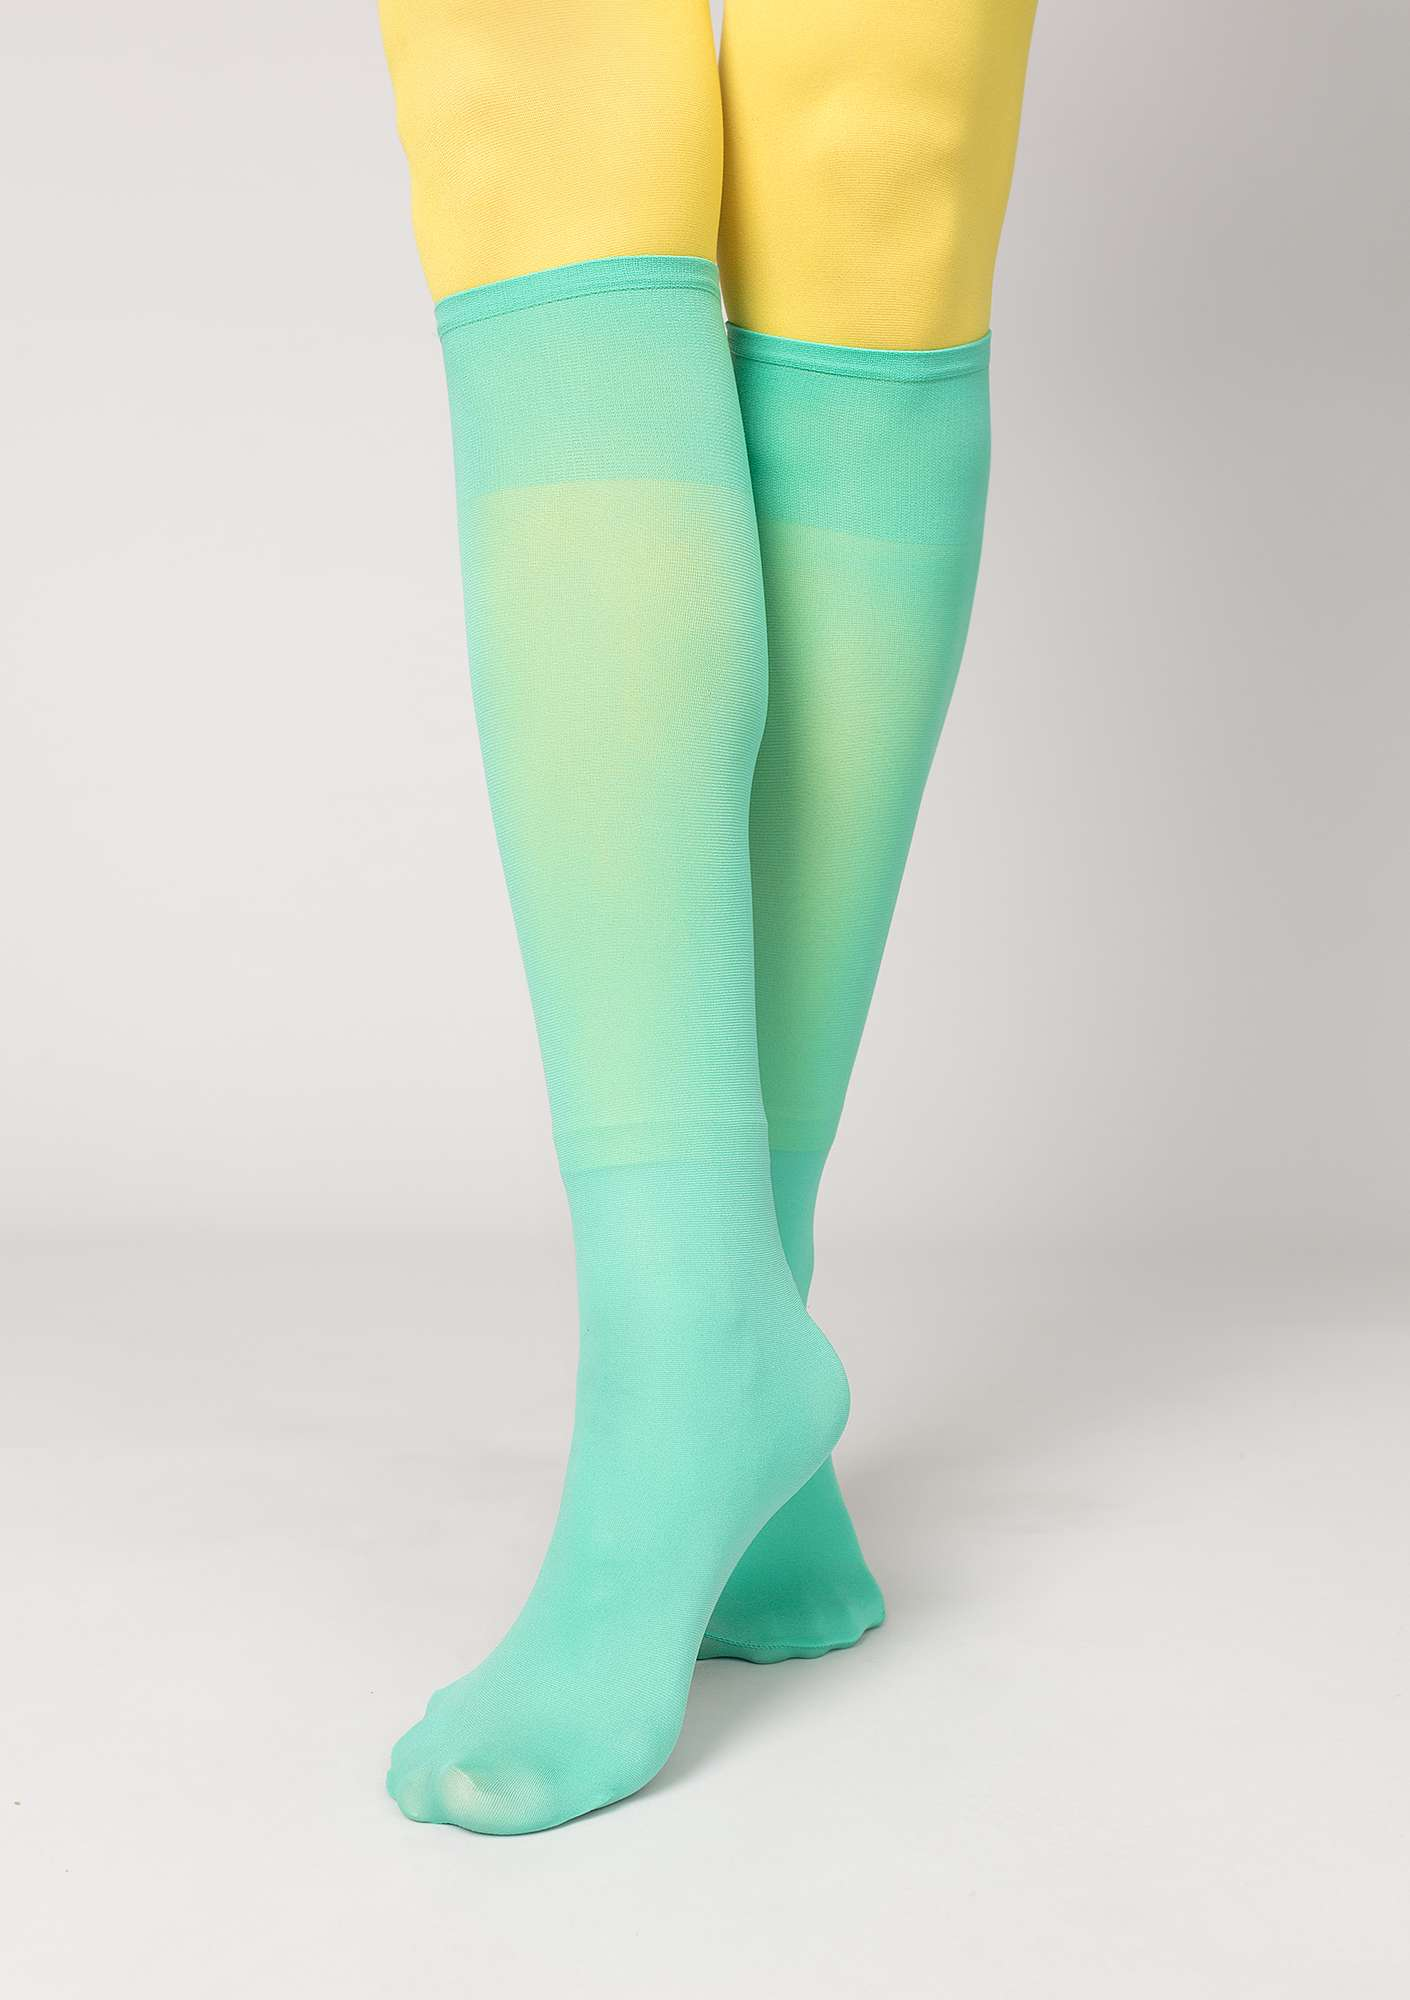 Knee-highs in recycled nylon pale orient green